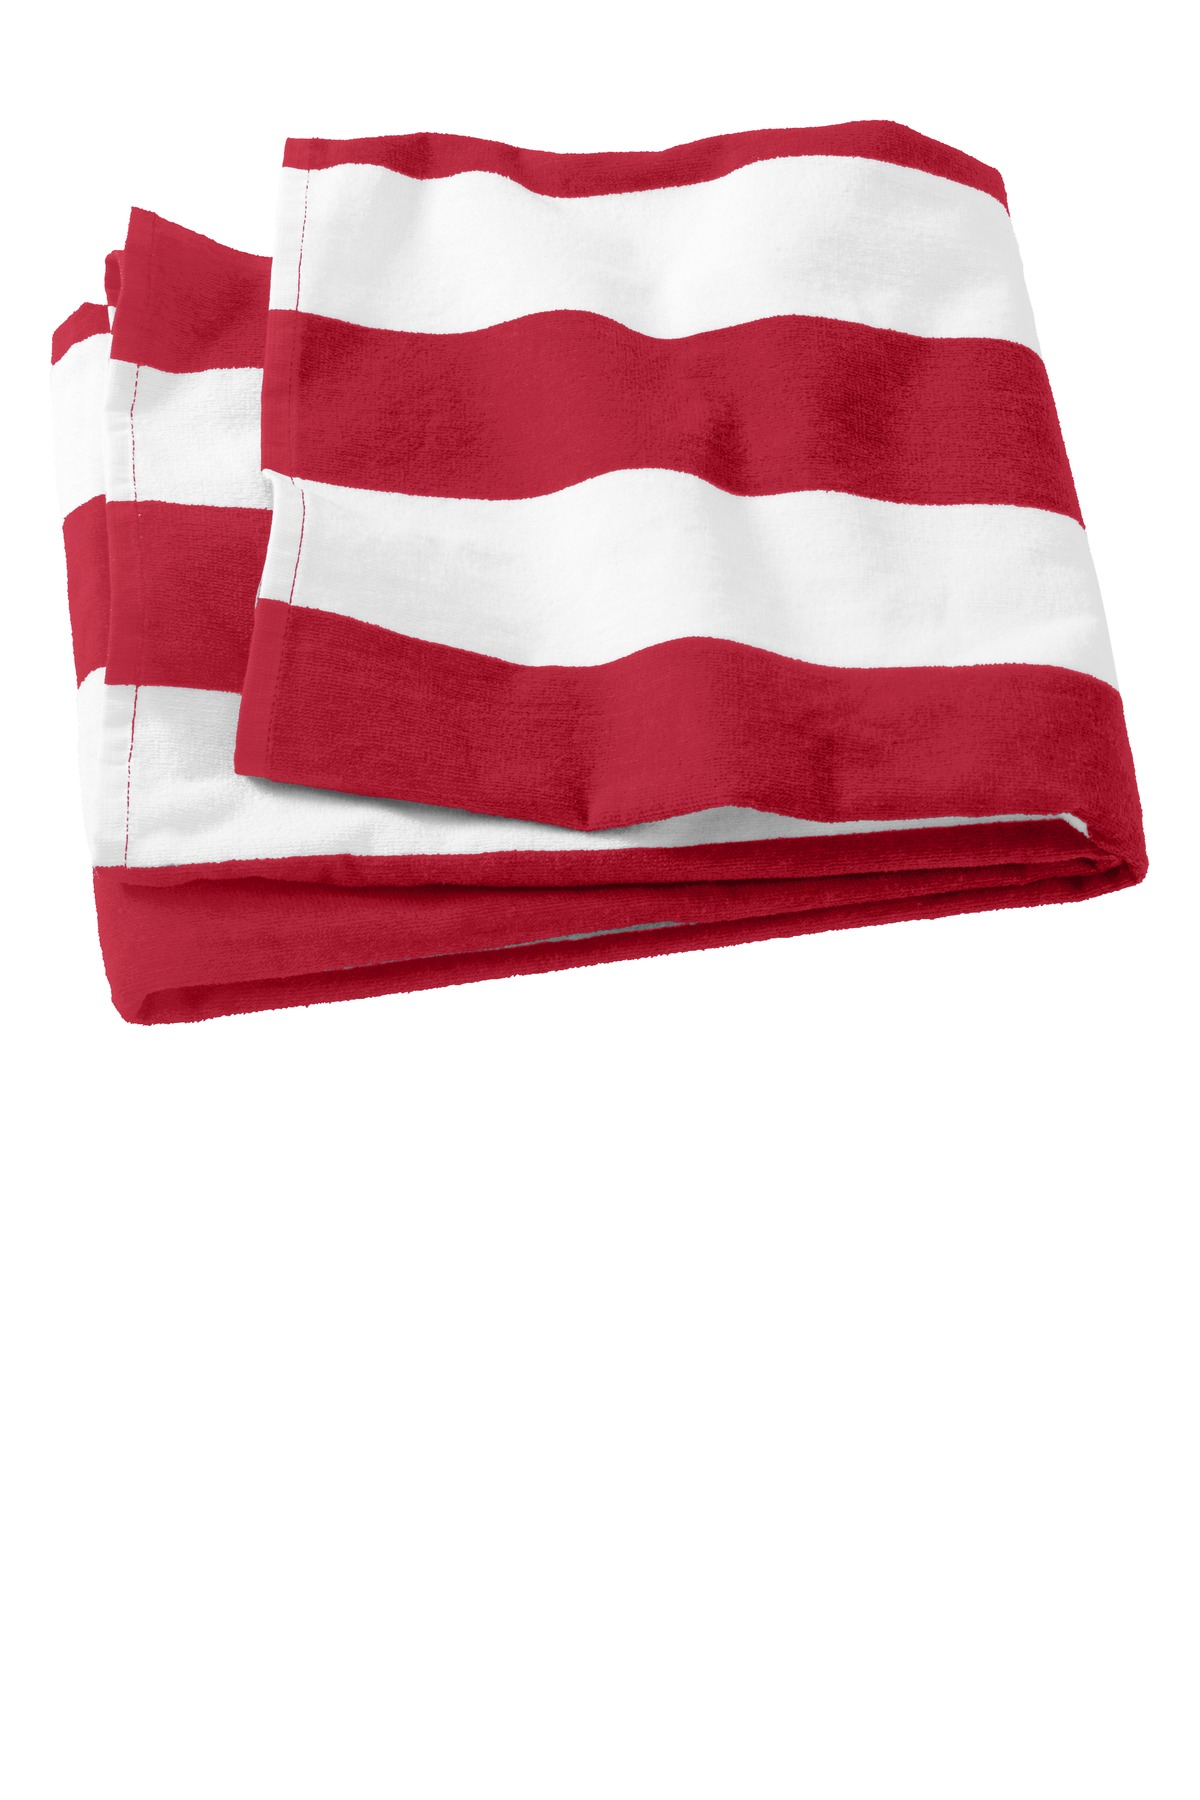 Port Authority ®  Cabana Stripe Beach Towel. PT43 - Red